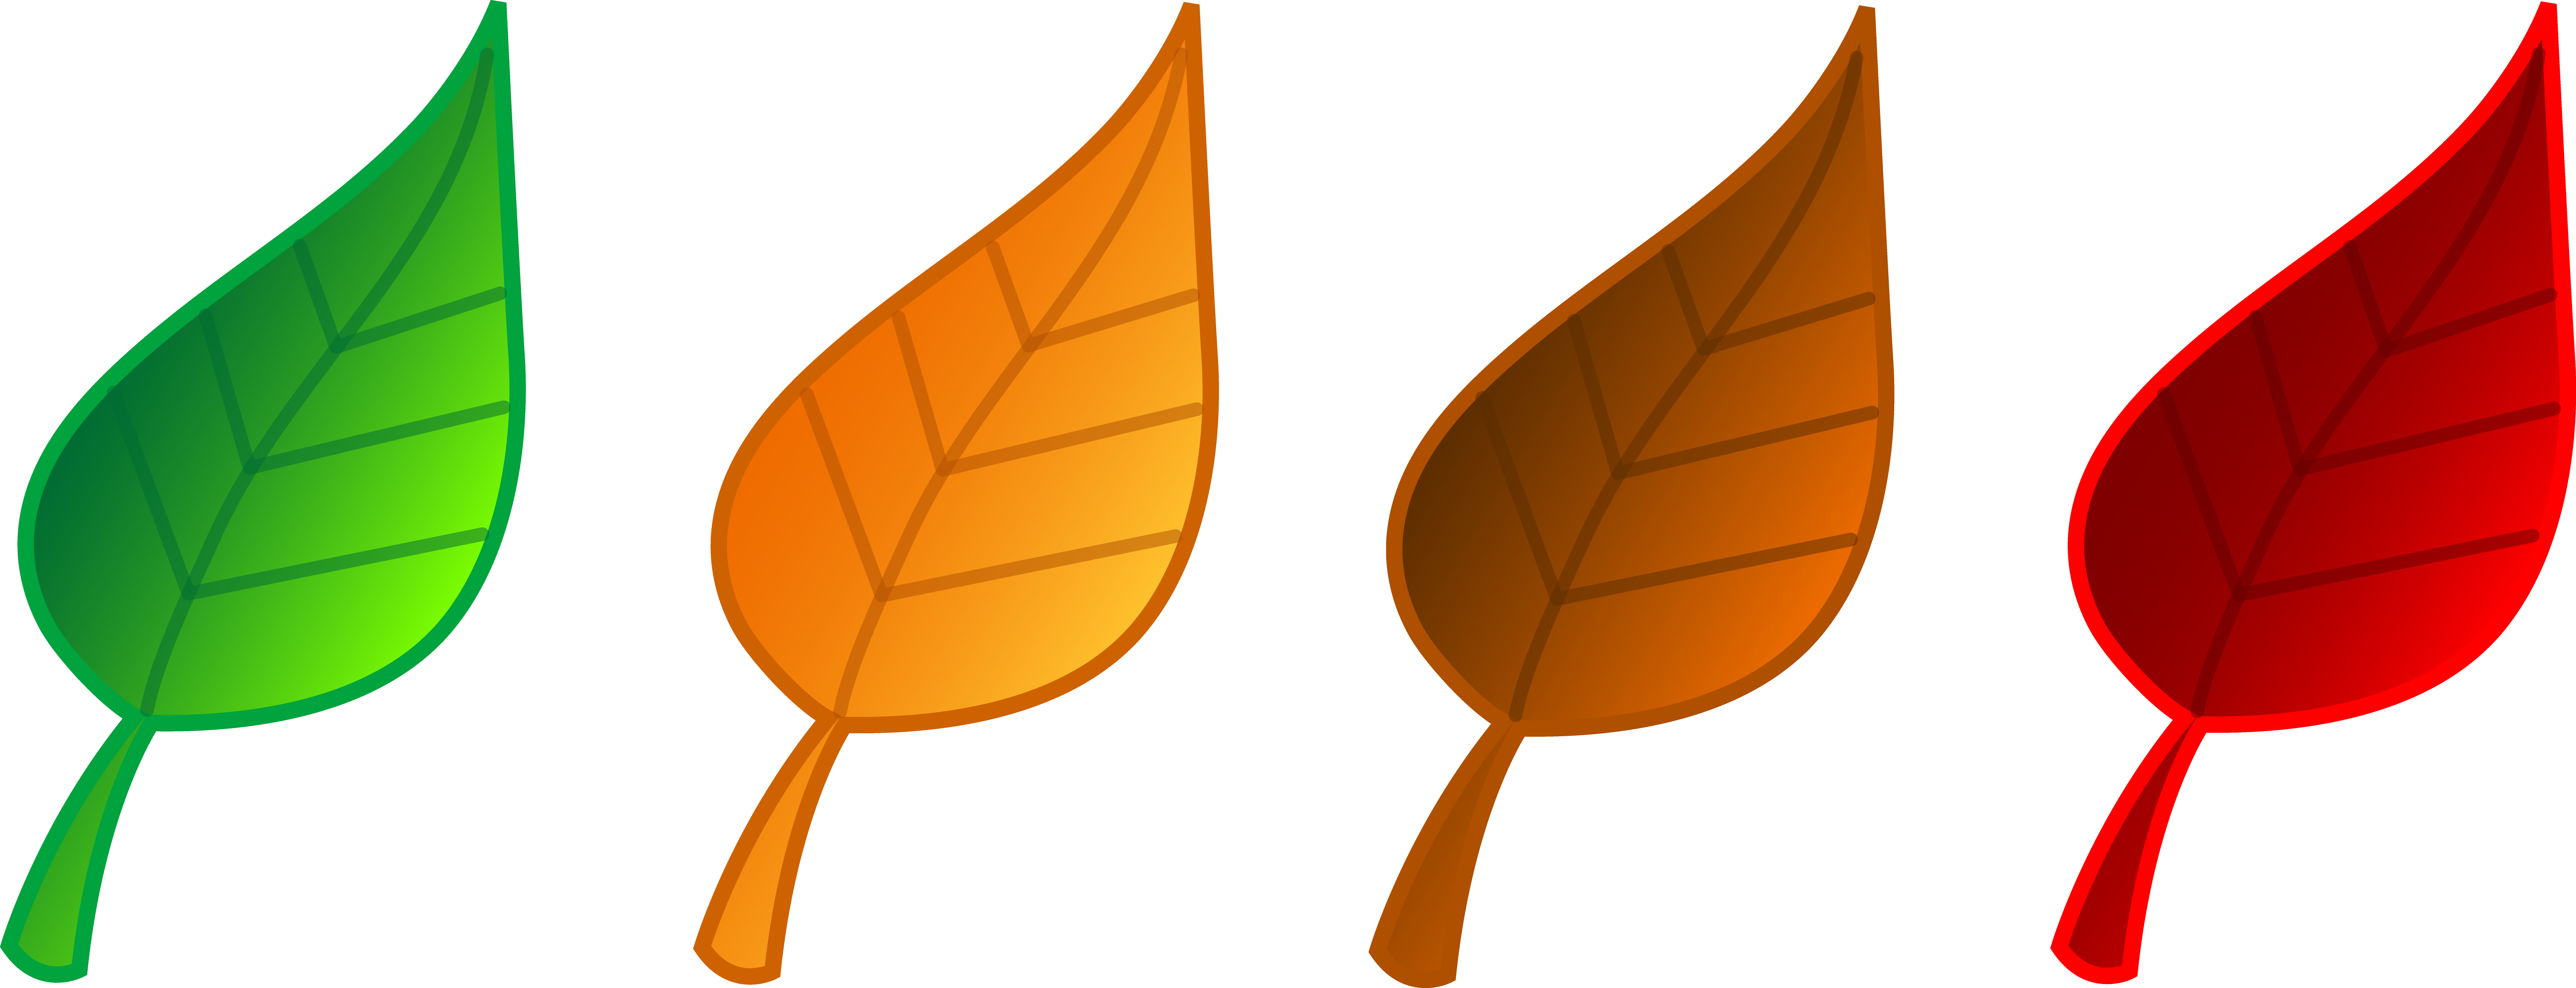 Best Fall Leaves Clip Art #22631.